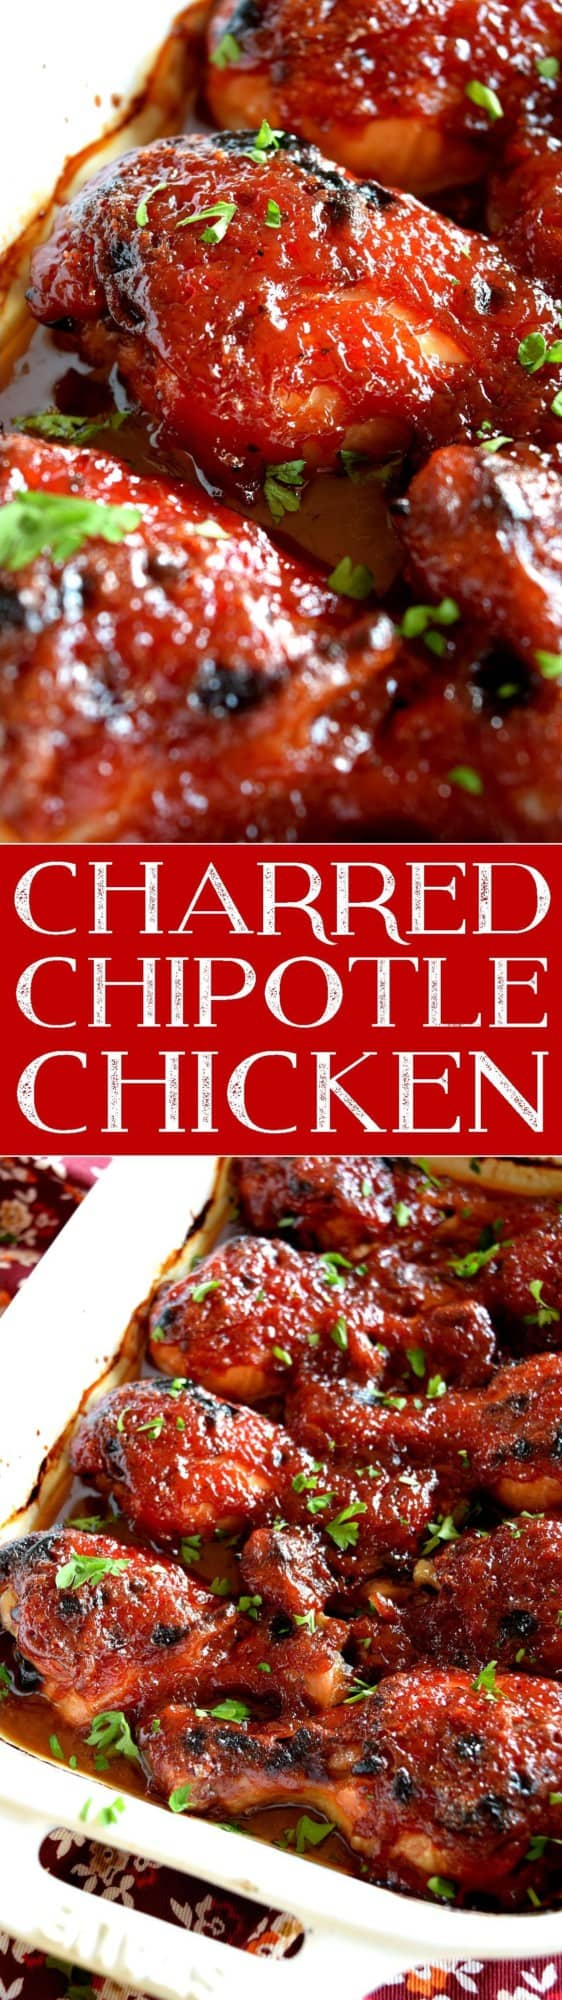 charred-chipotle-chicken